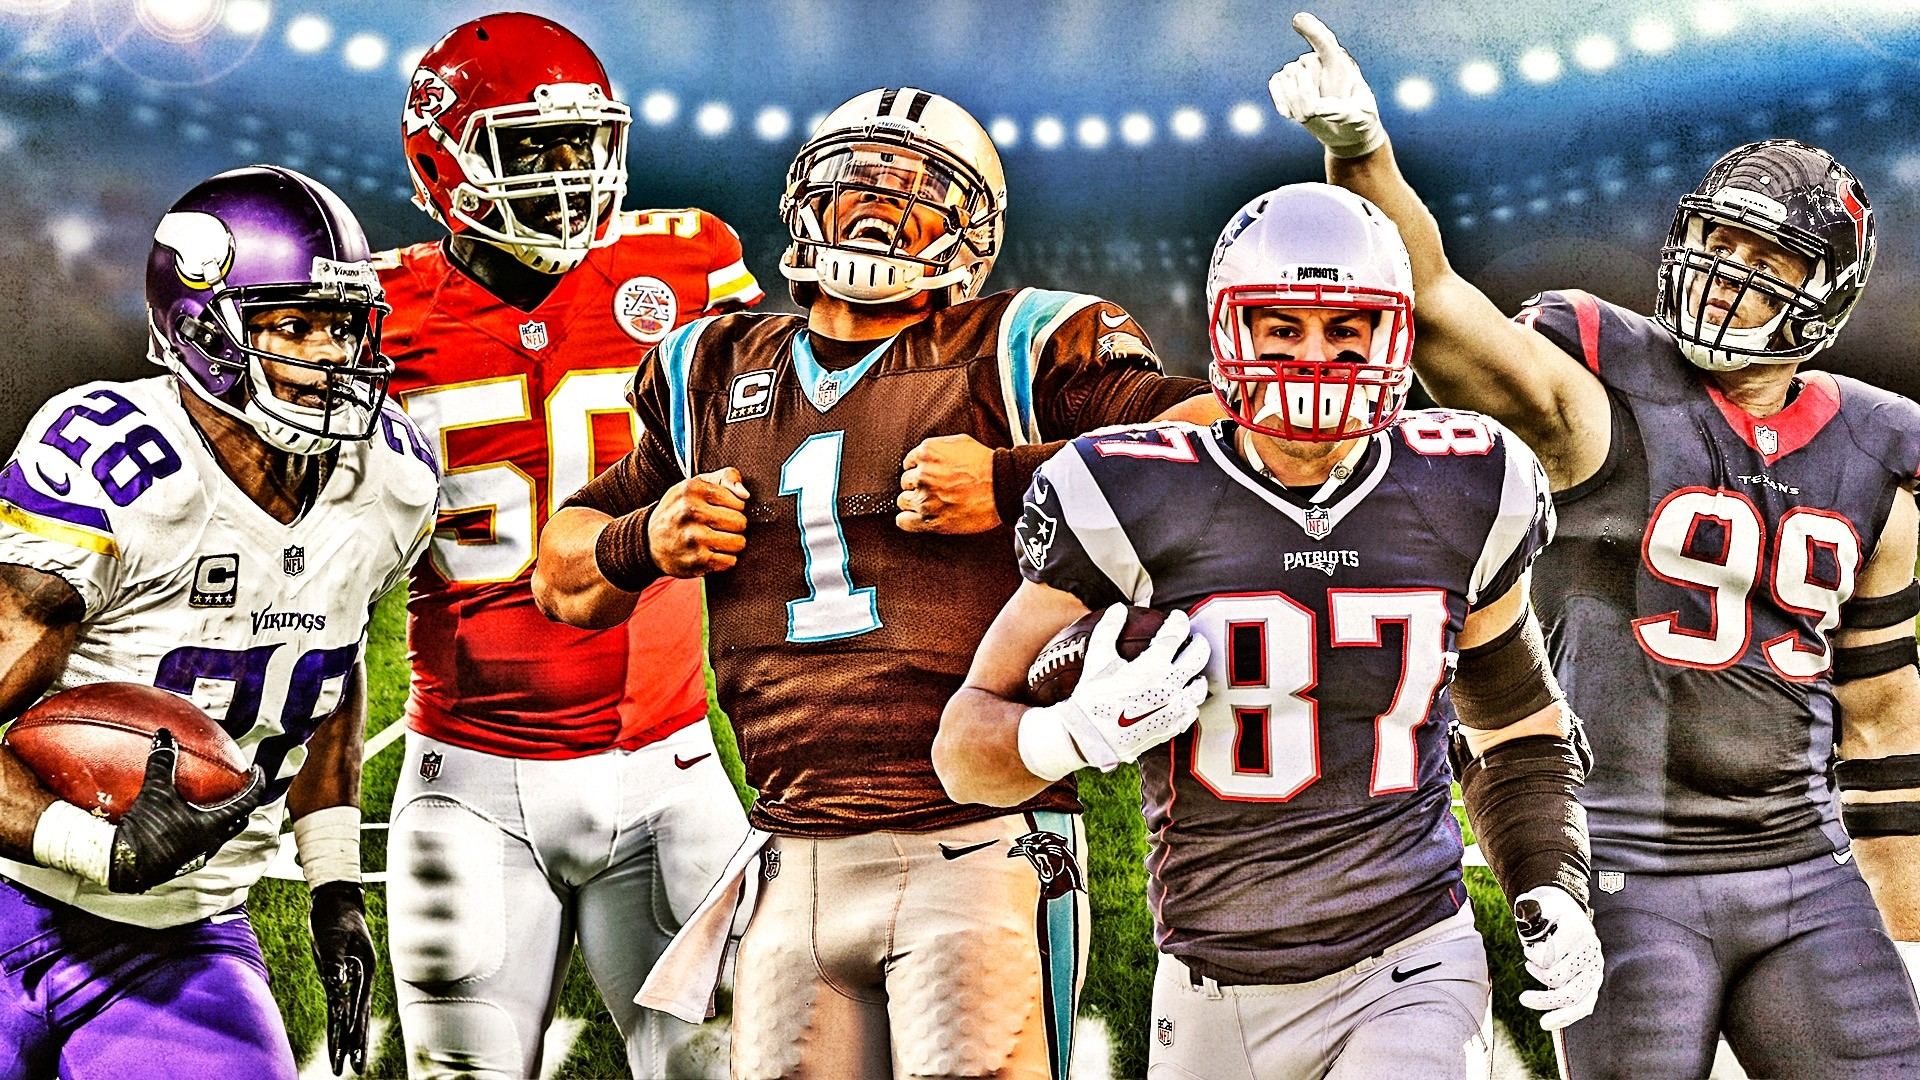 Sporting News' 2015 NFL All-Pro team: Coaches crown the season's best  players   Sporting News